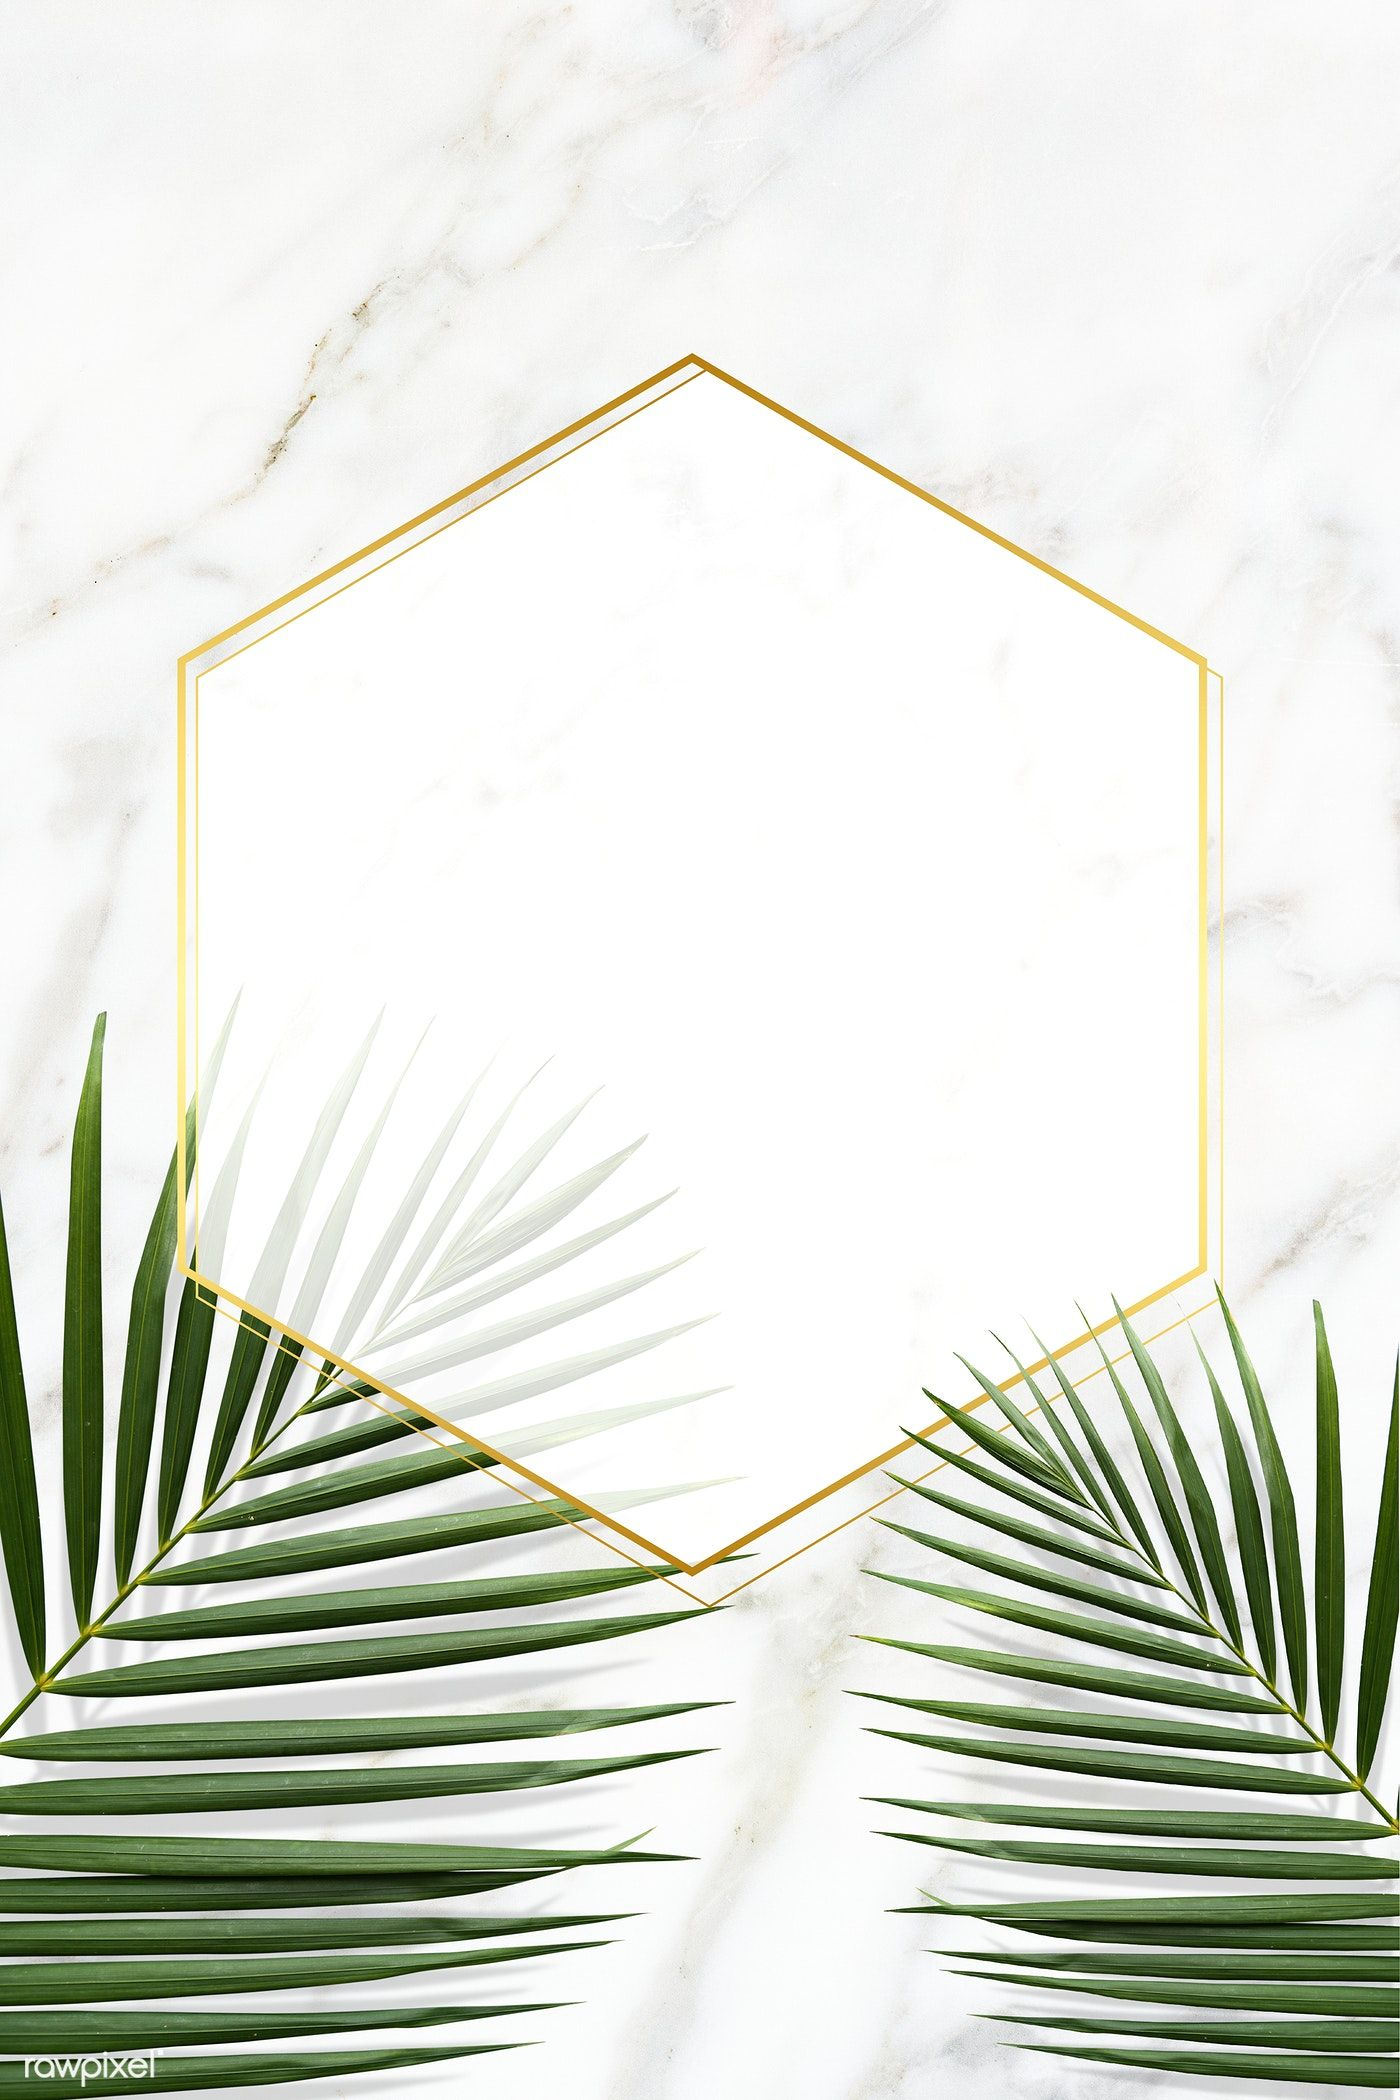 Download Premium Image Of Hexagon Golden Frame On A Marble